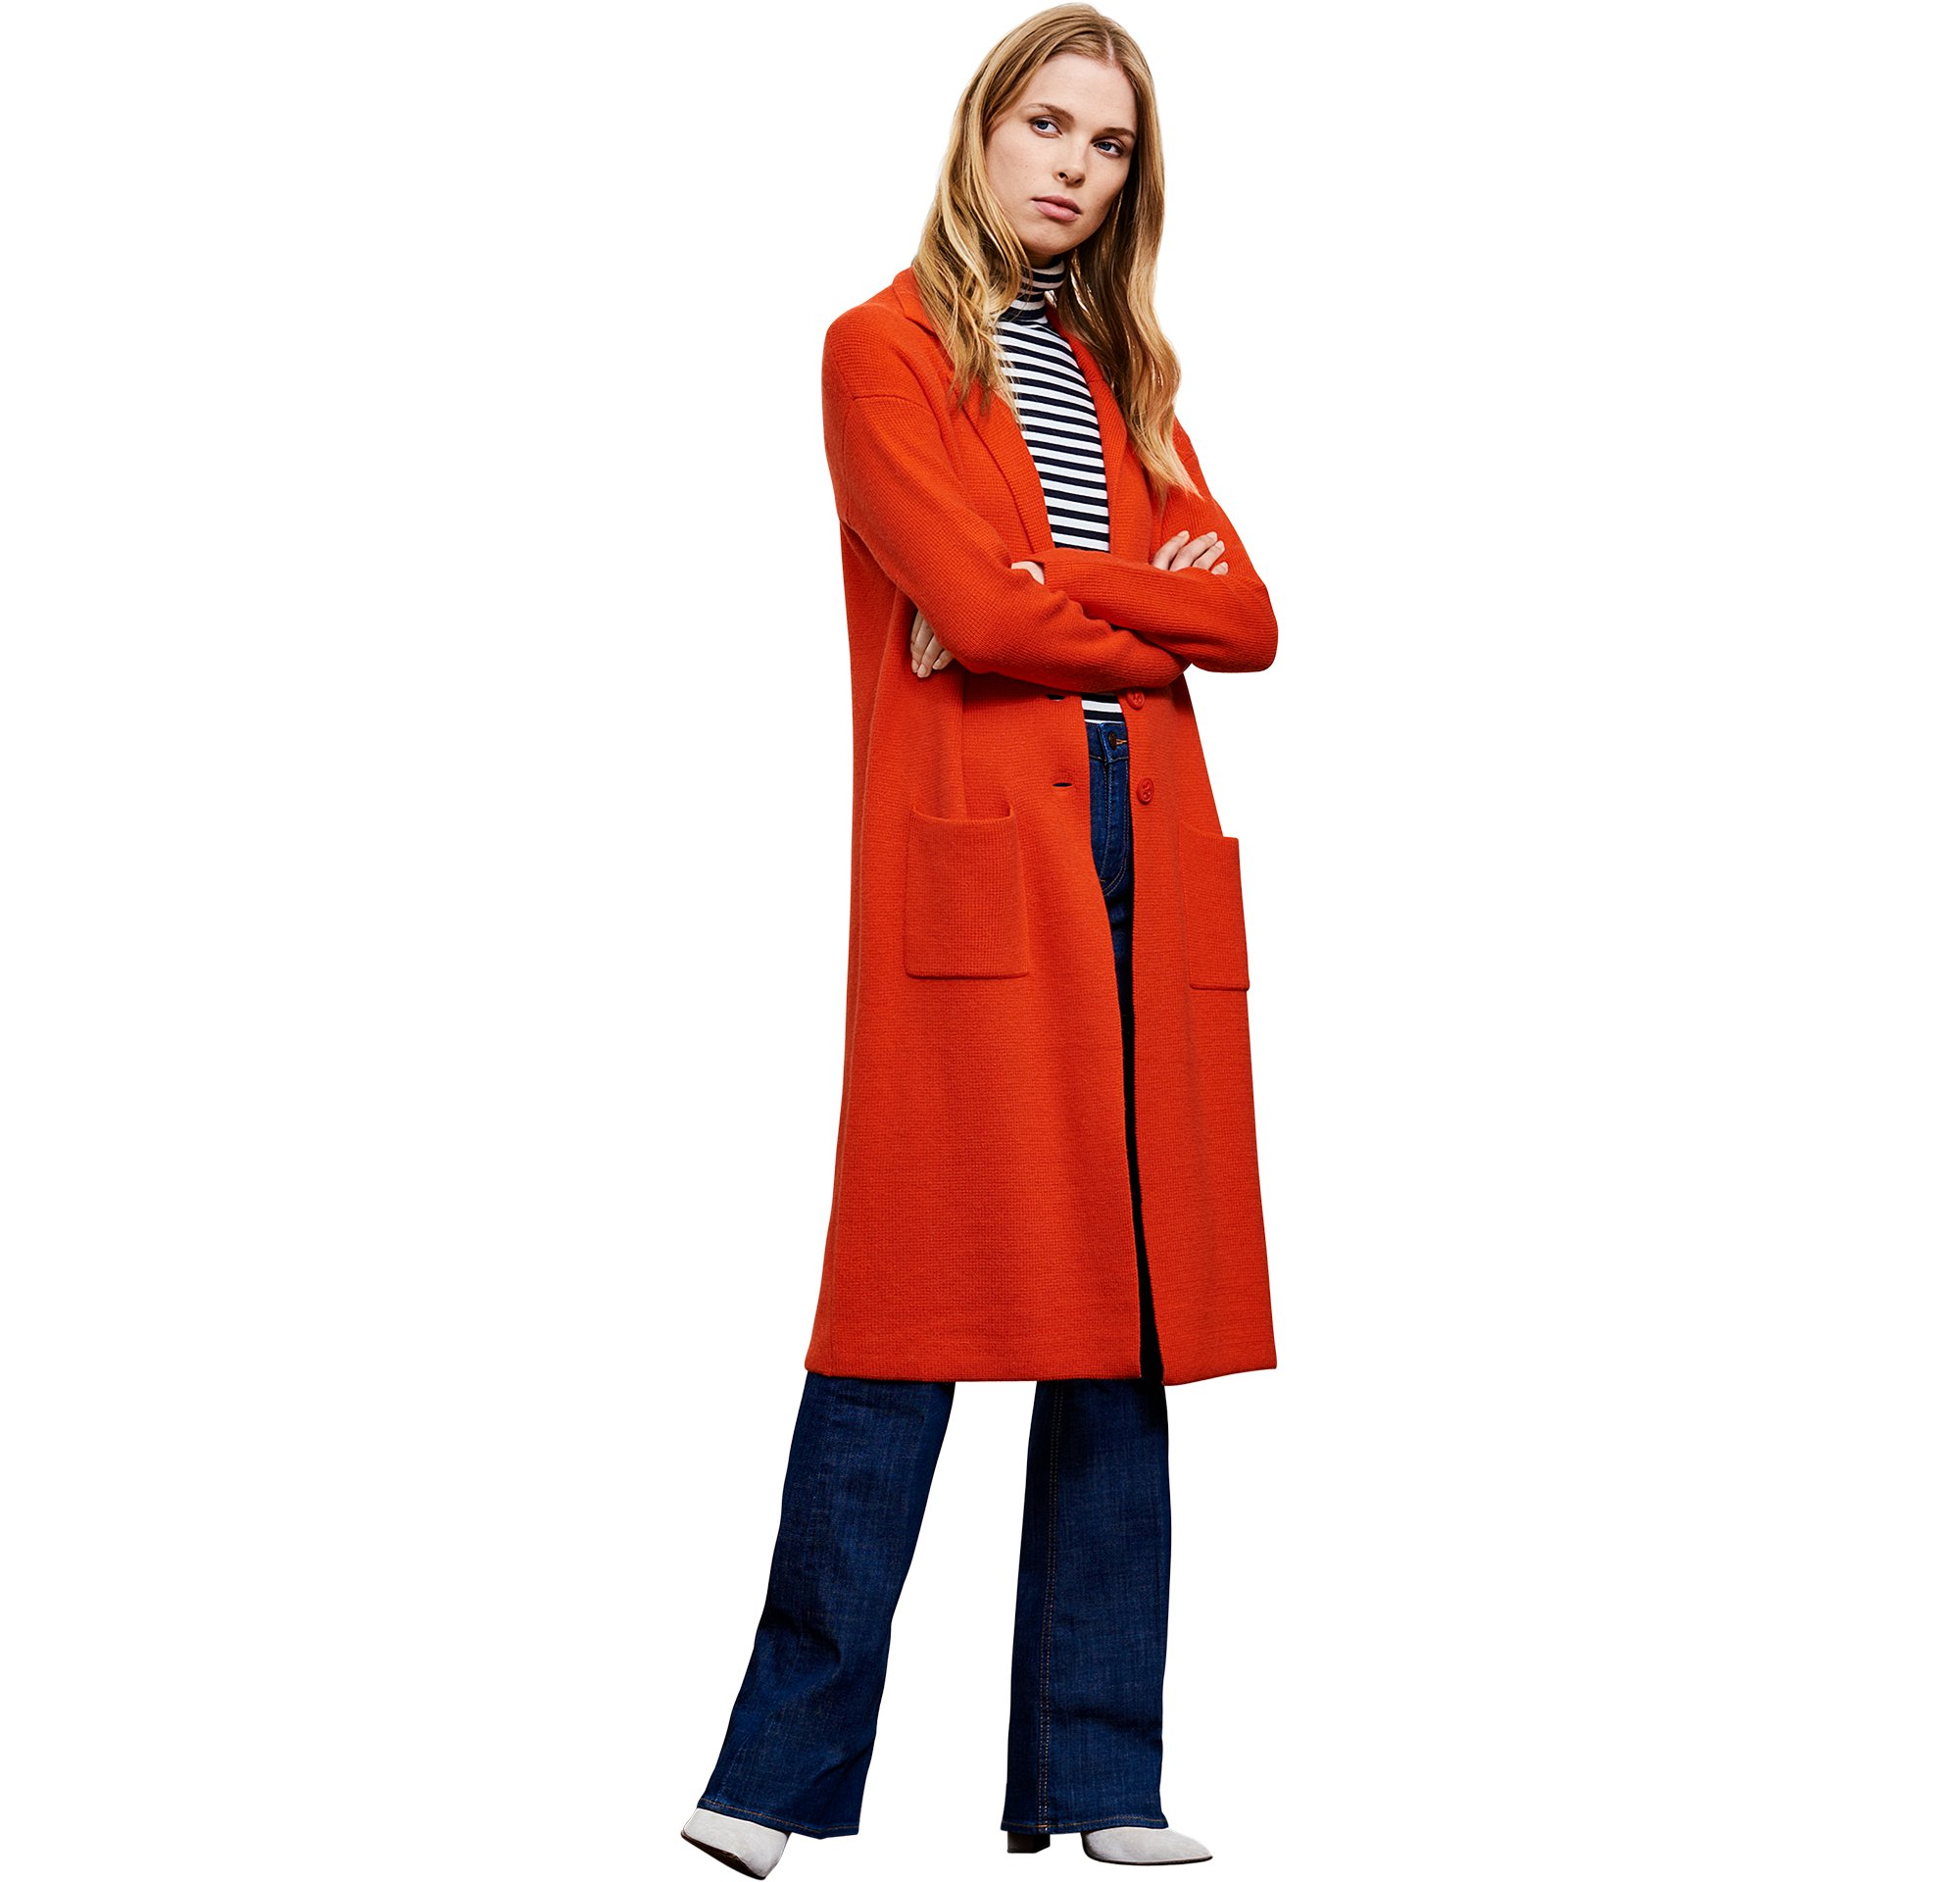 Manteau, jeans BOSS Orange Femme